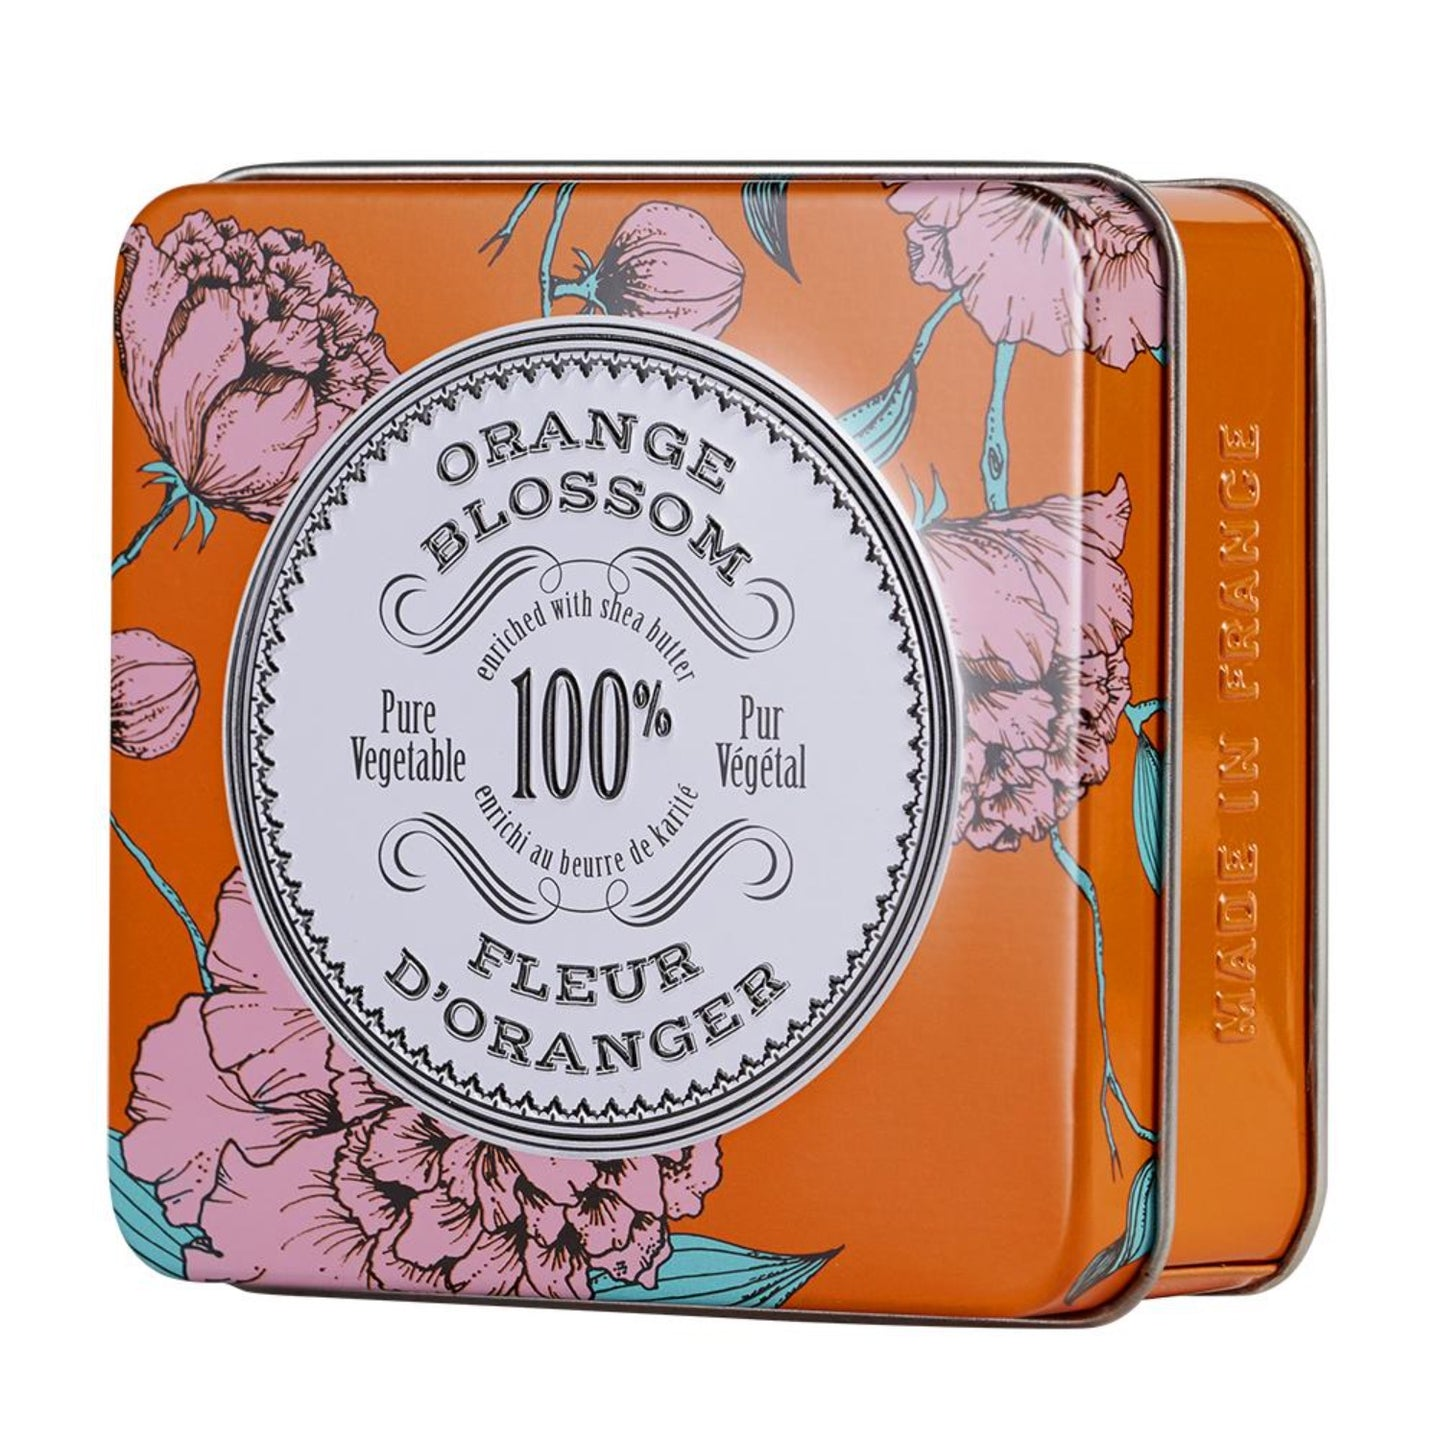 La Chatelaine orange blossom tinned travel soap